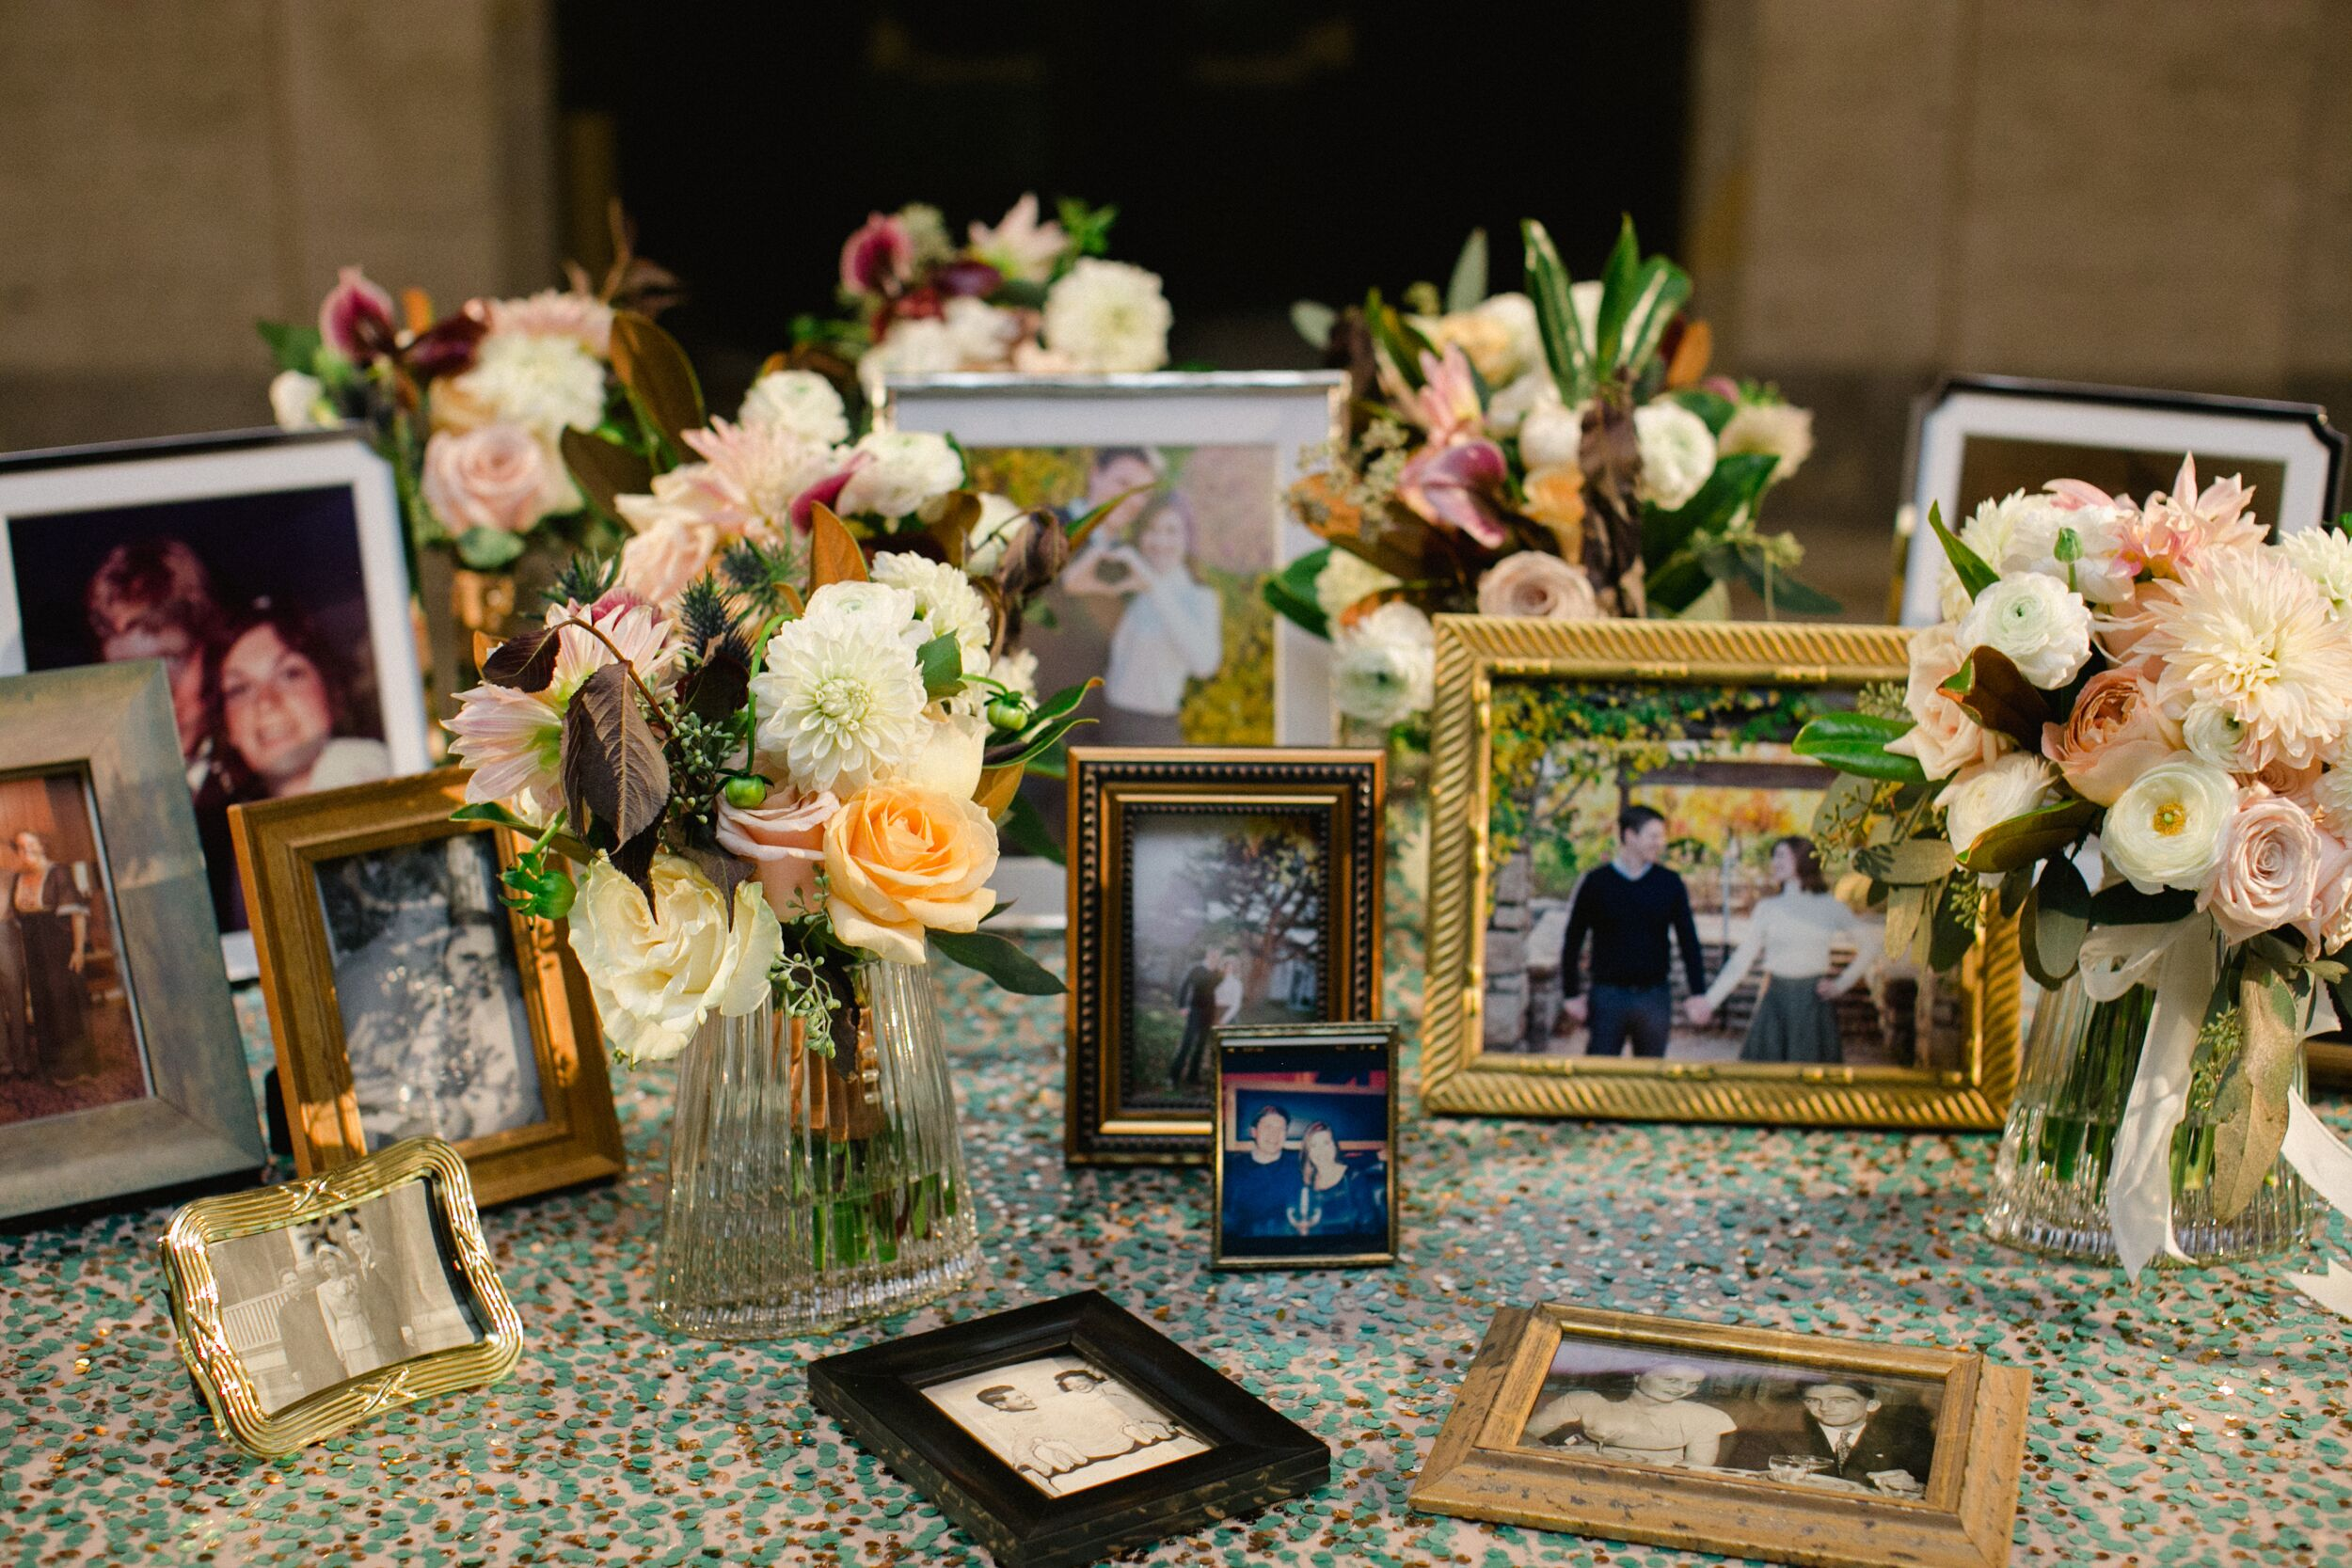 5 Wedding Ideas That Won't Blow Your Budget